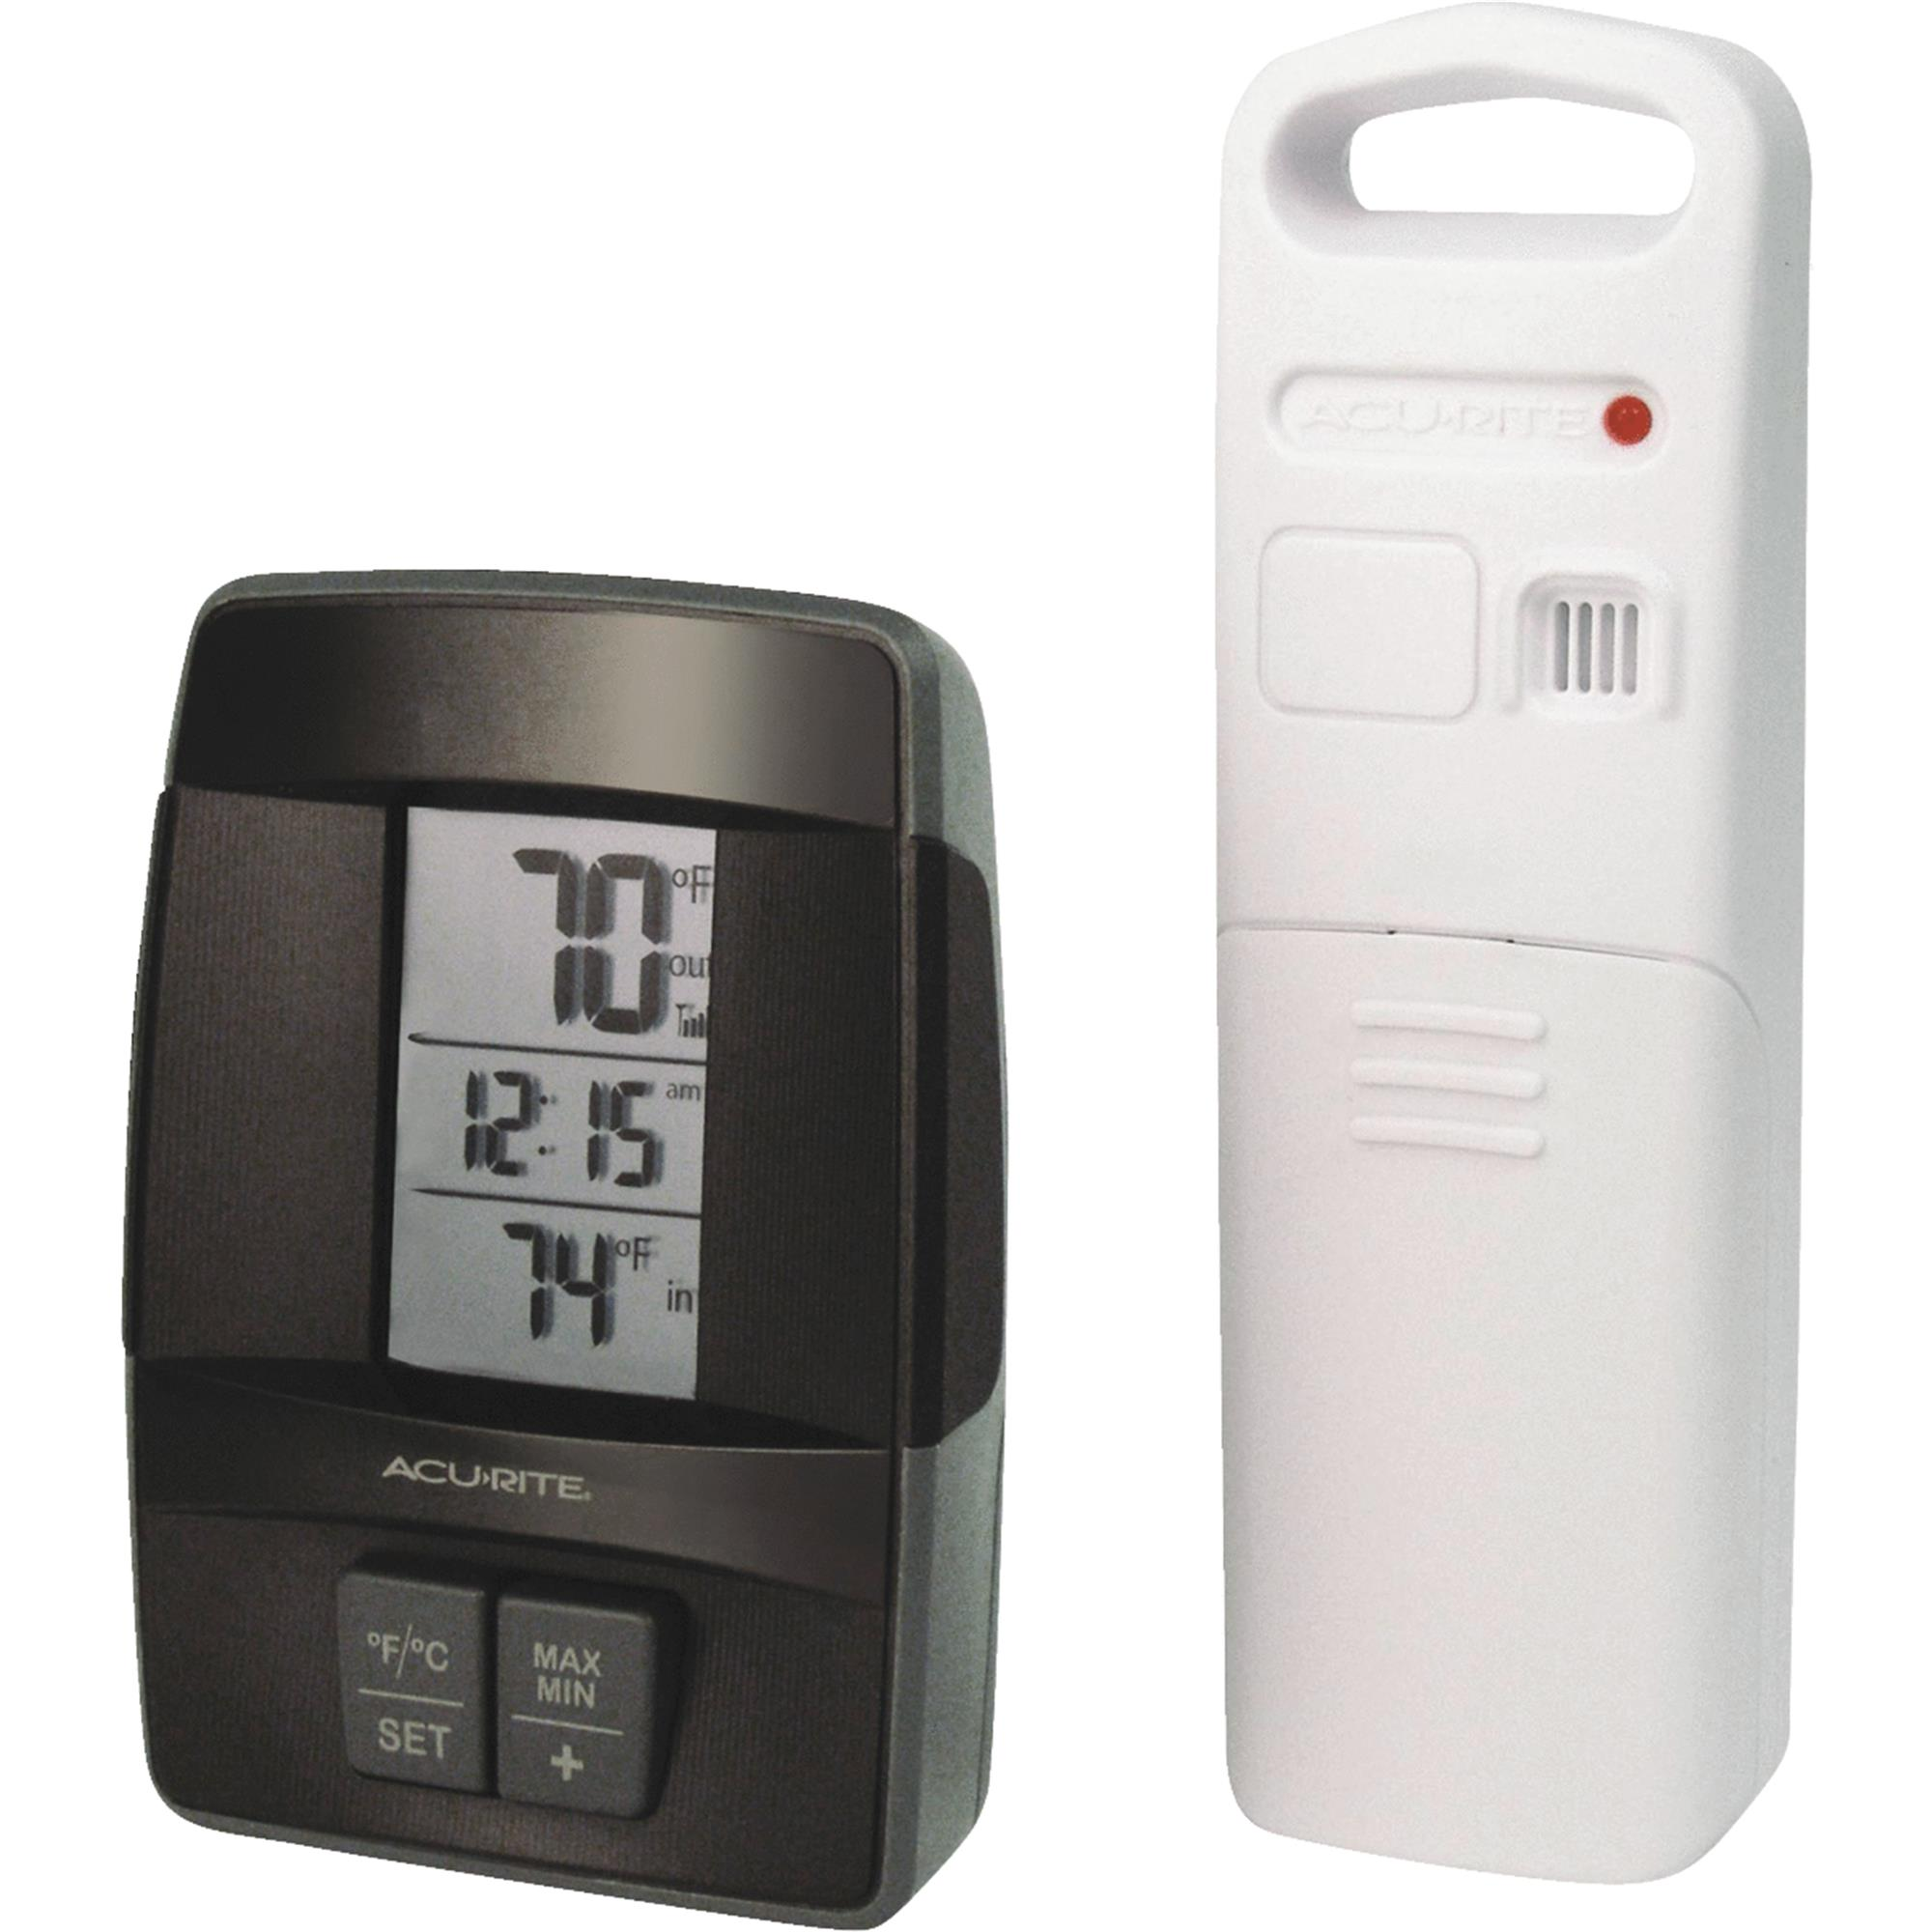 AcuRite Wireless Clock Indoor & Outdoor Thermometer by Chaney Instrument